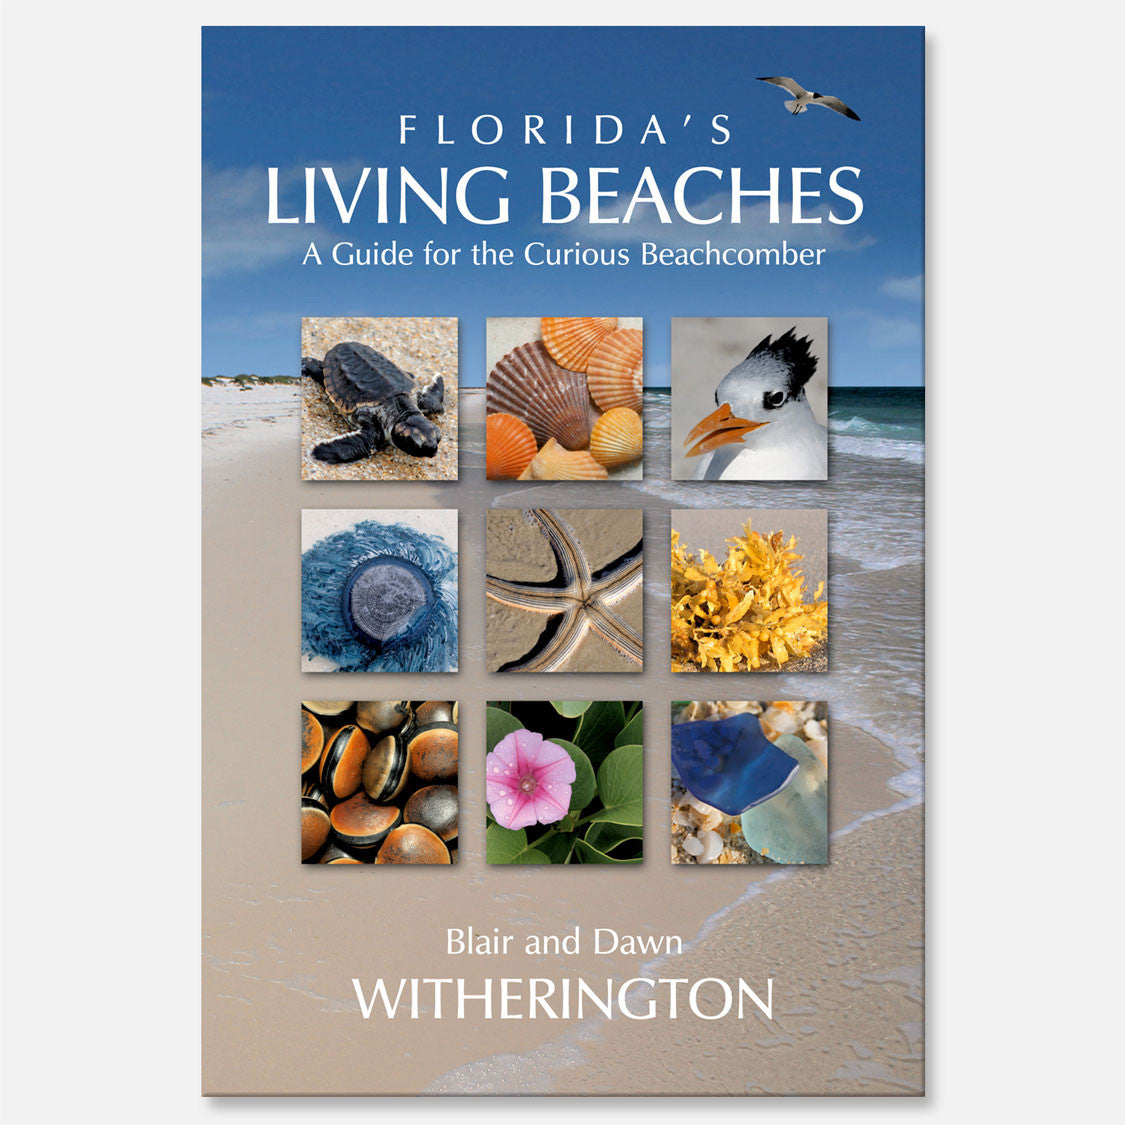 Florida's Living Beaches